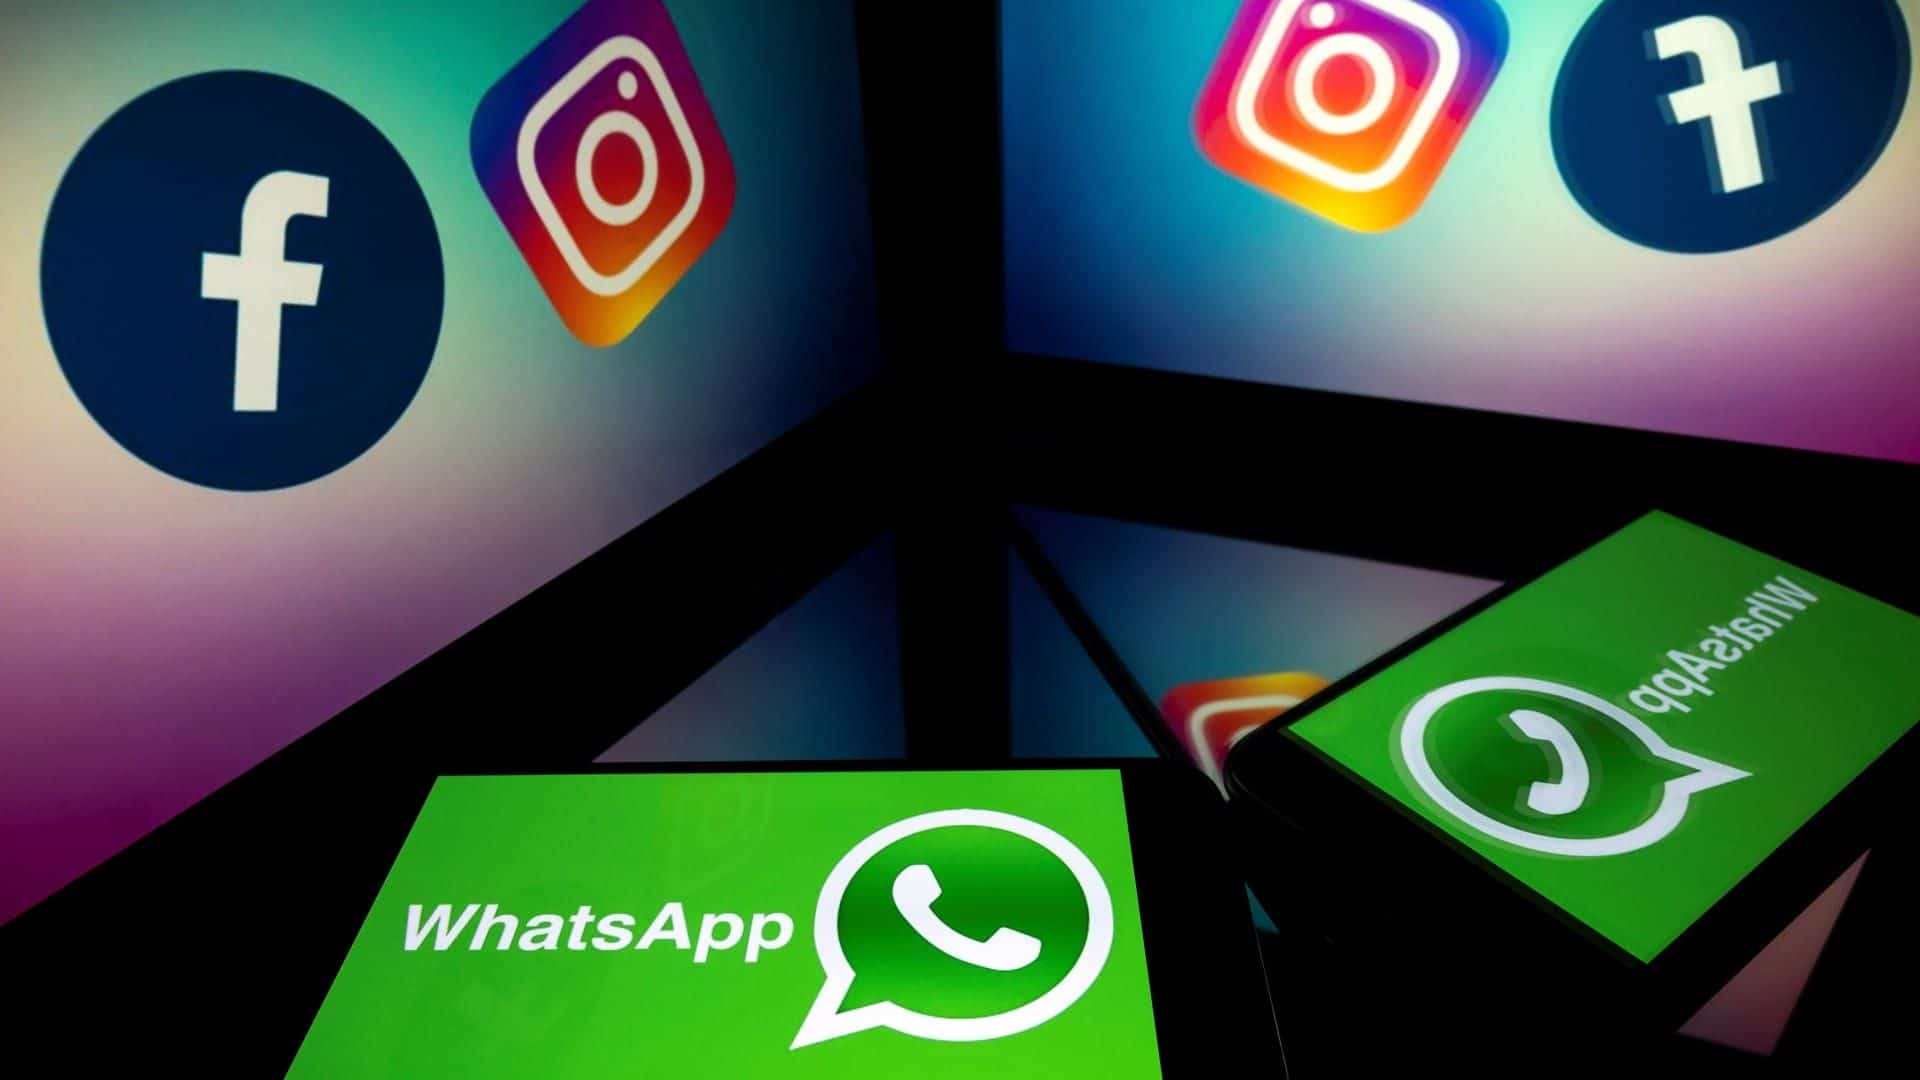 A dark fate for WhatsApp.. 3 reasons and two secure applications to expect a major migration from WhatsApp: Alternative 3 10/12/2021 - 9:21 PM